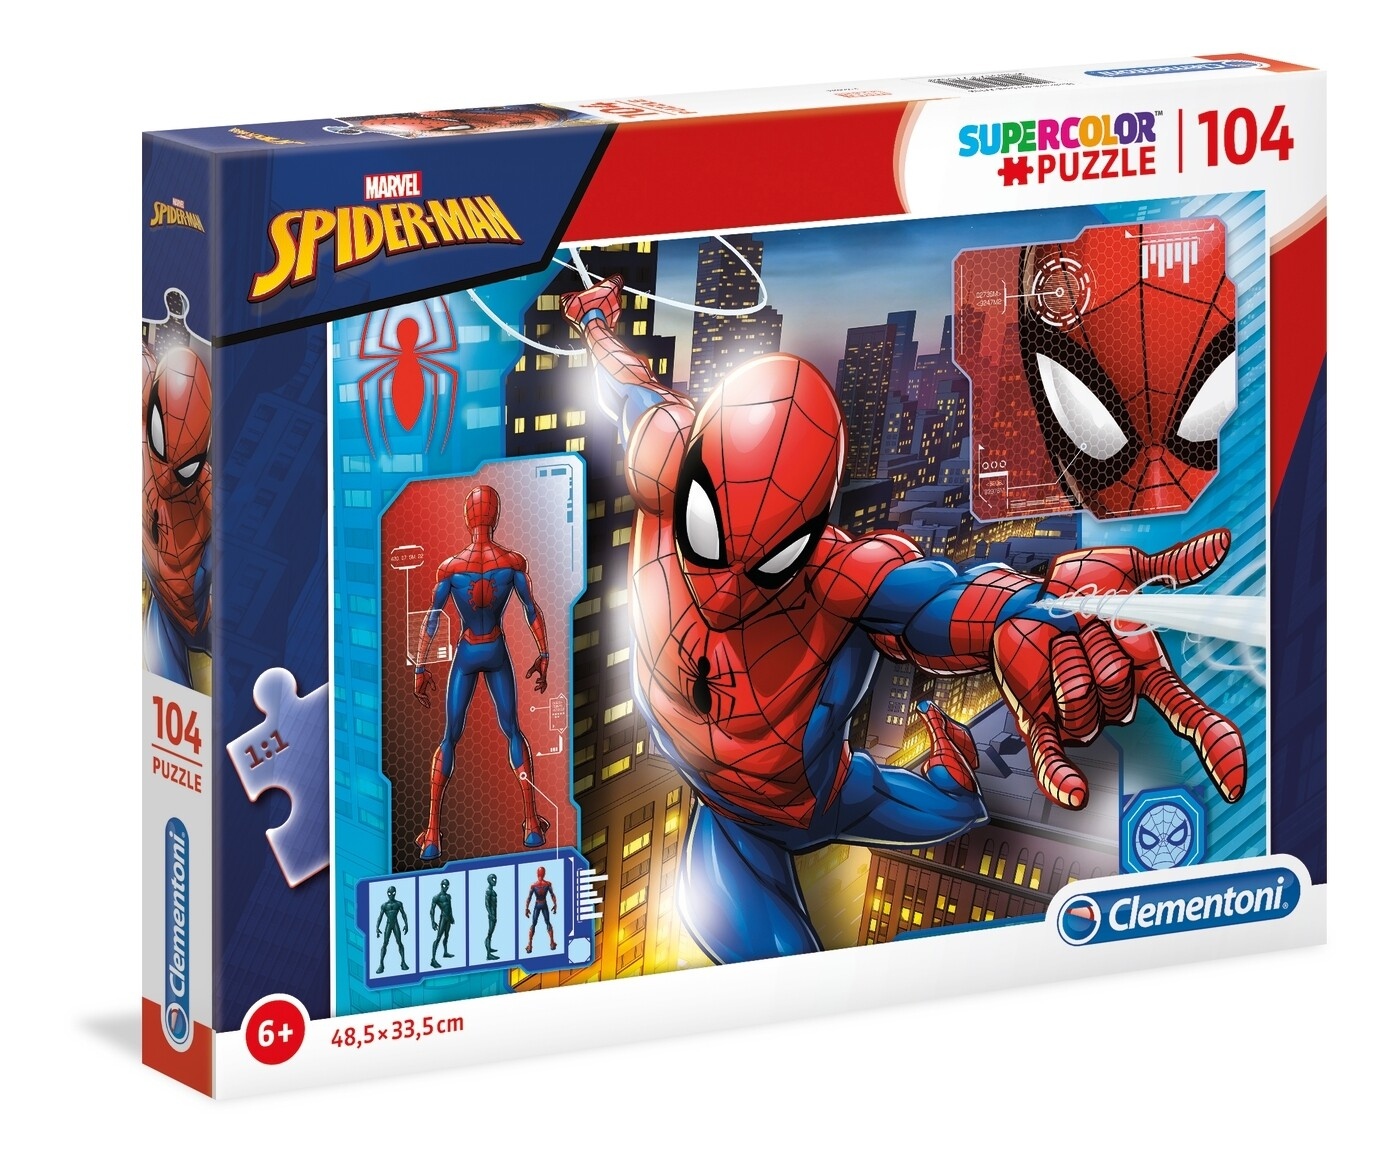 PUZZLE Super 104pcs Spiderman - CLEMENTONI